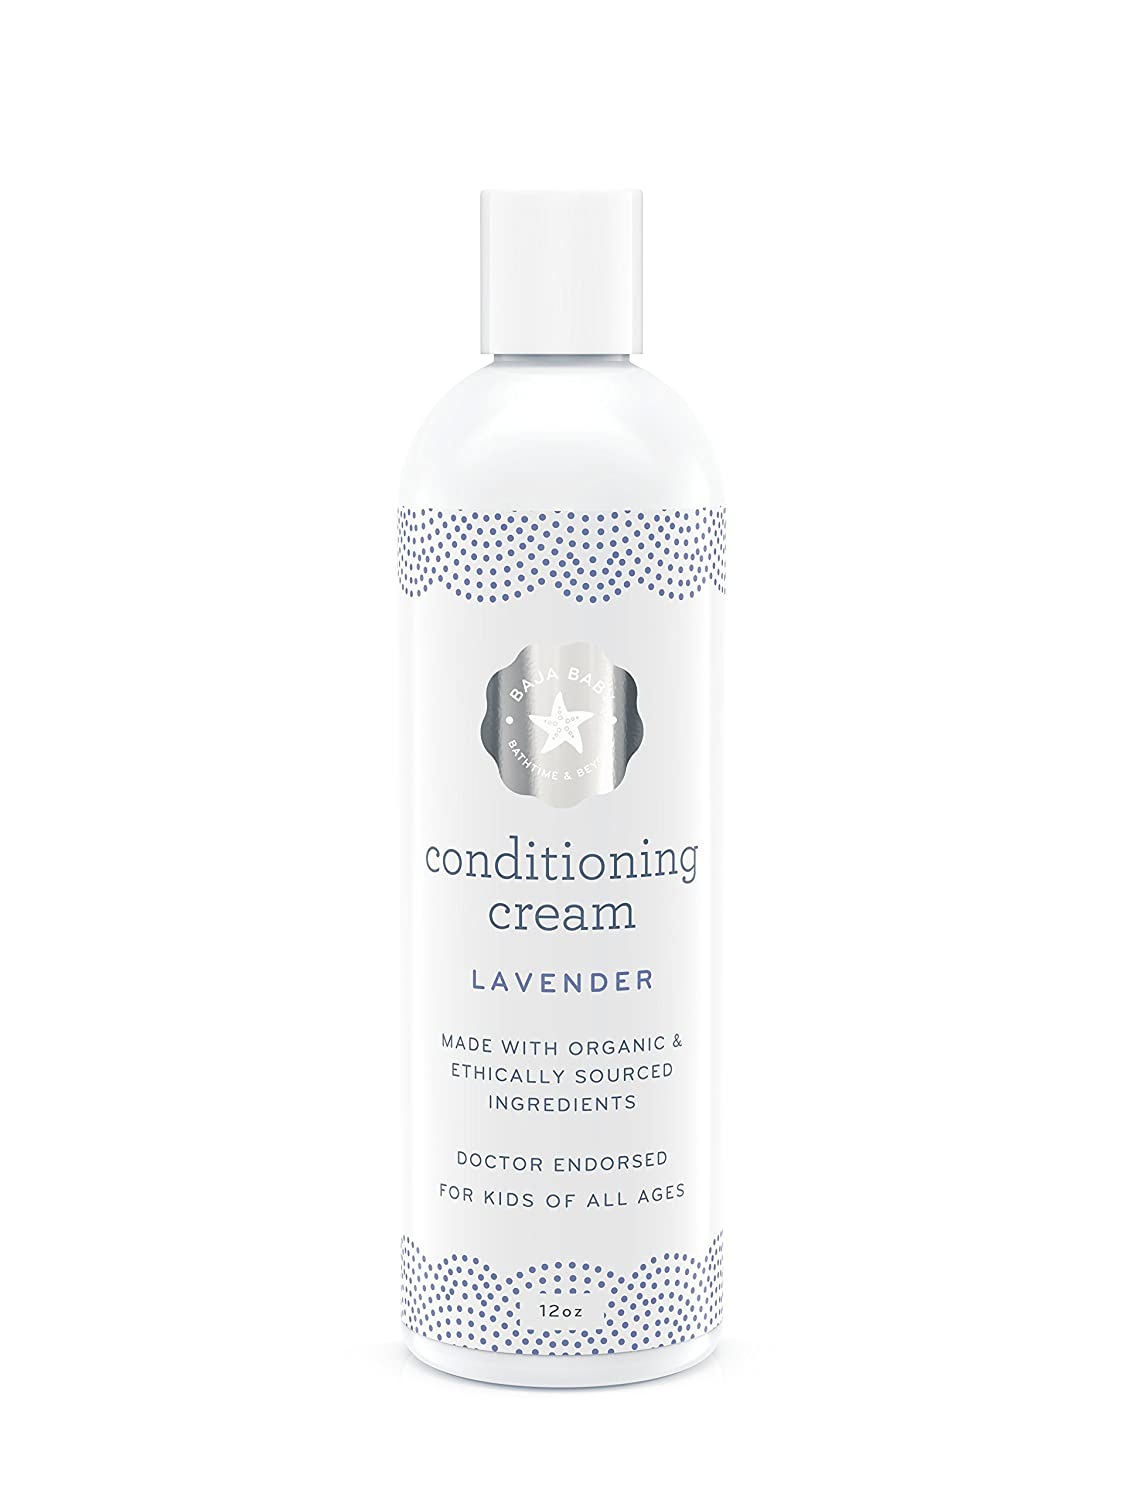 Organic Lavender Conditioner - EWG VERIFIED - Light Lavender Scent - 12 Fluid Ounces Family Size - No Chemicals, Sulphates, Parabens or Phosphates - Light Conditioner For Baby Hair